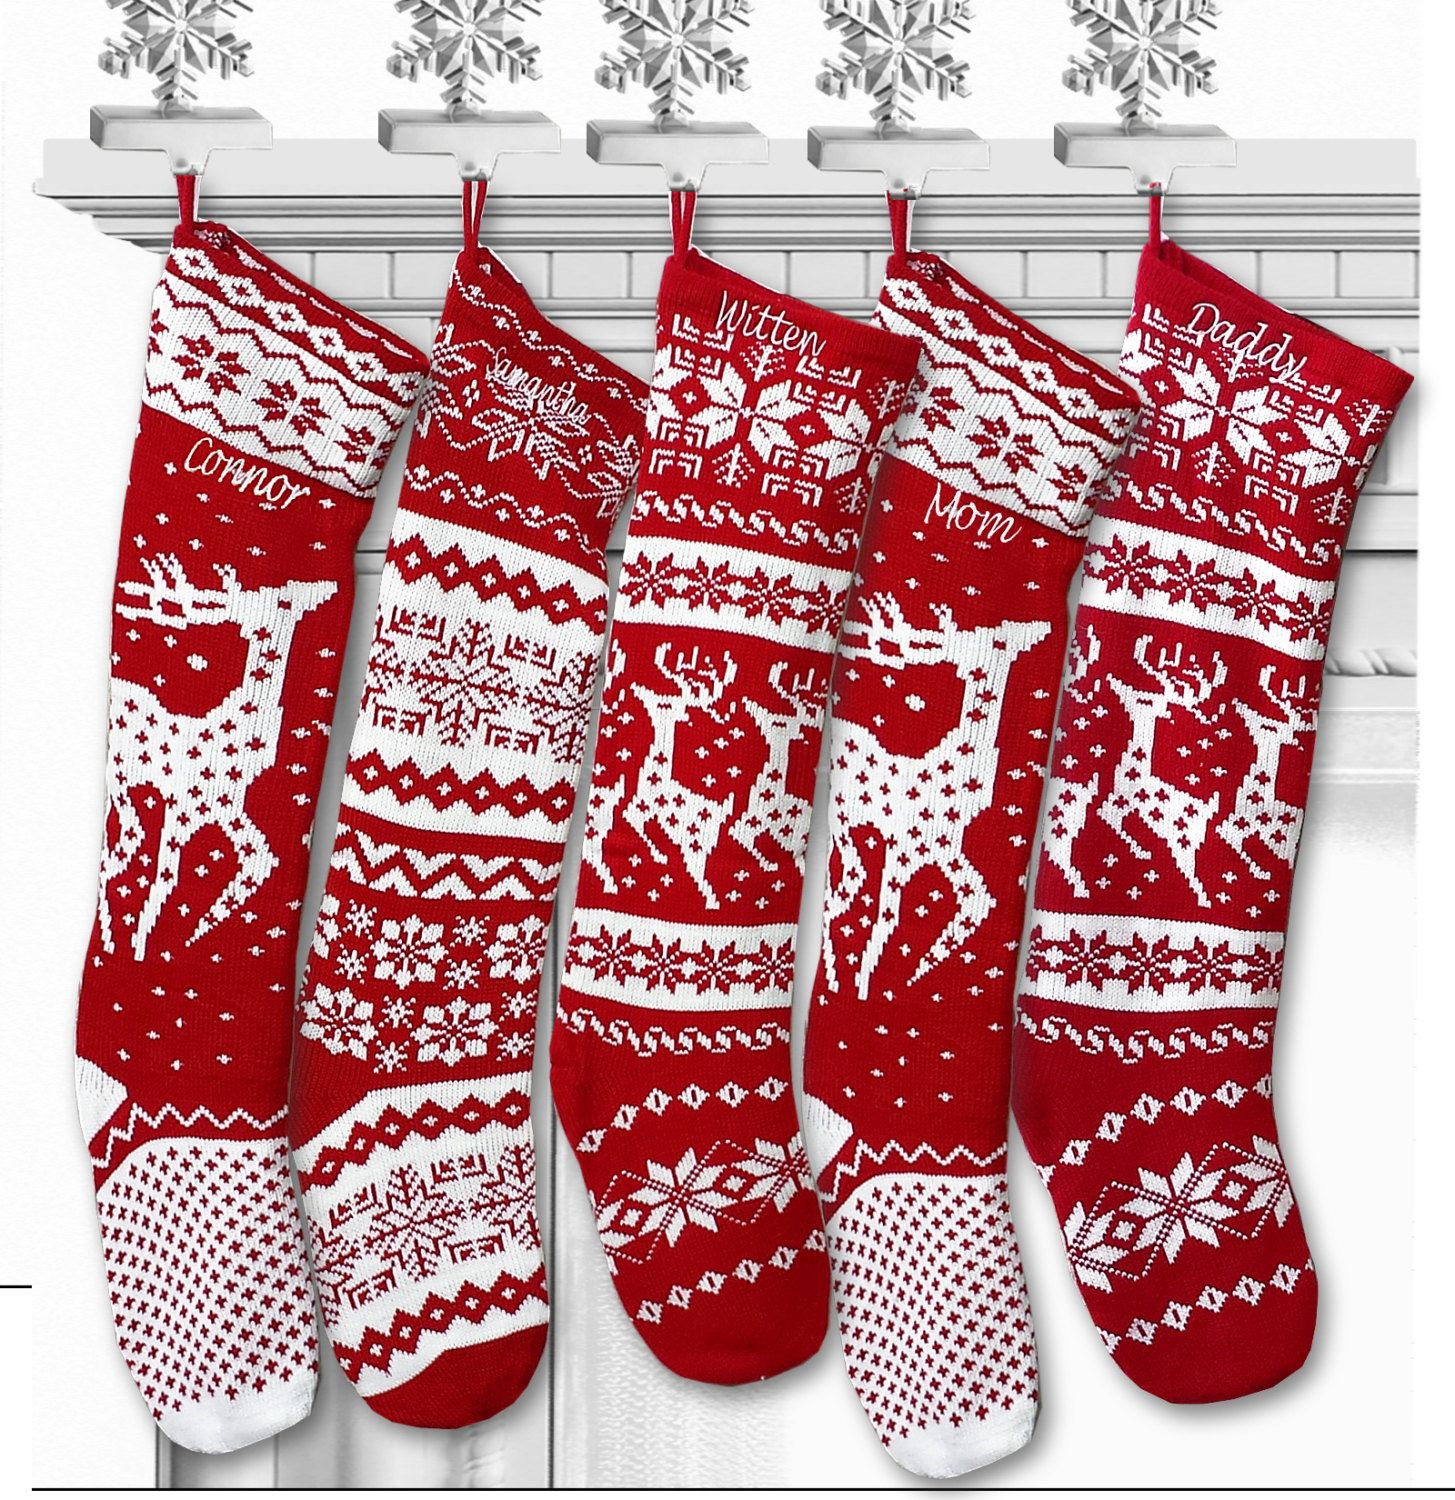 Knit Christmas Stockings - Red White - Renindeer or Snowflake Design Scandinavian Nordic Modern Holiday Theme (25.95 USD) by eugenie2